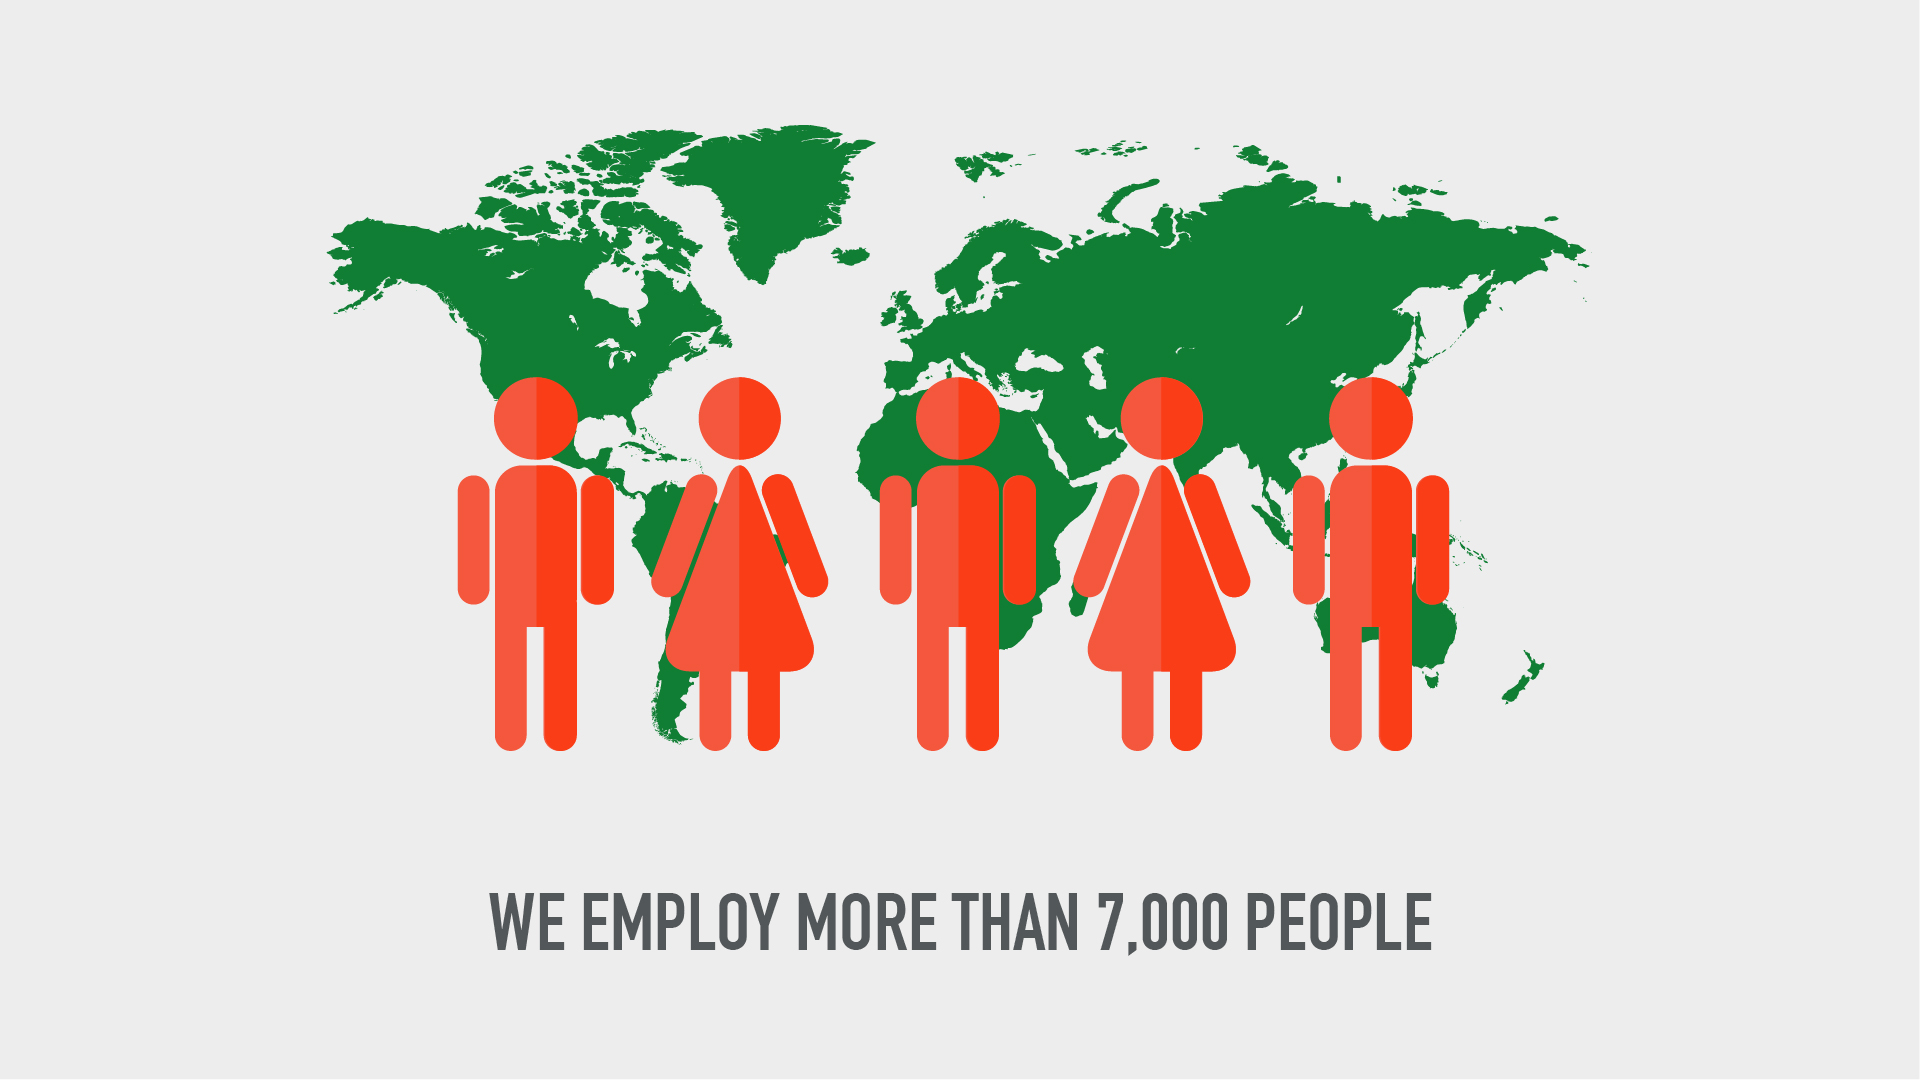 We employ more than 7,000 people.jpg